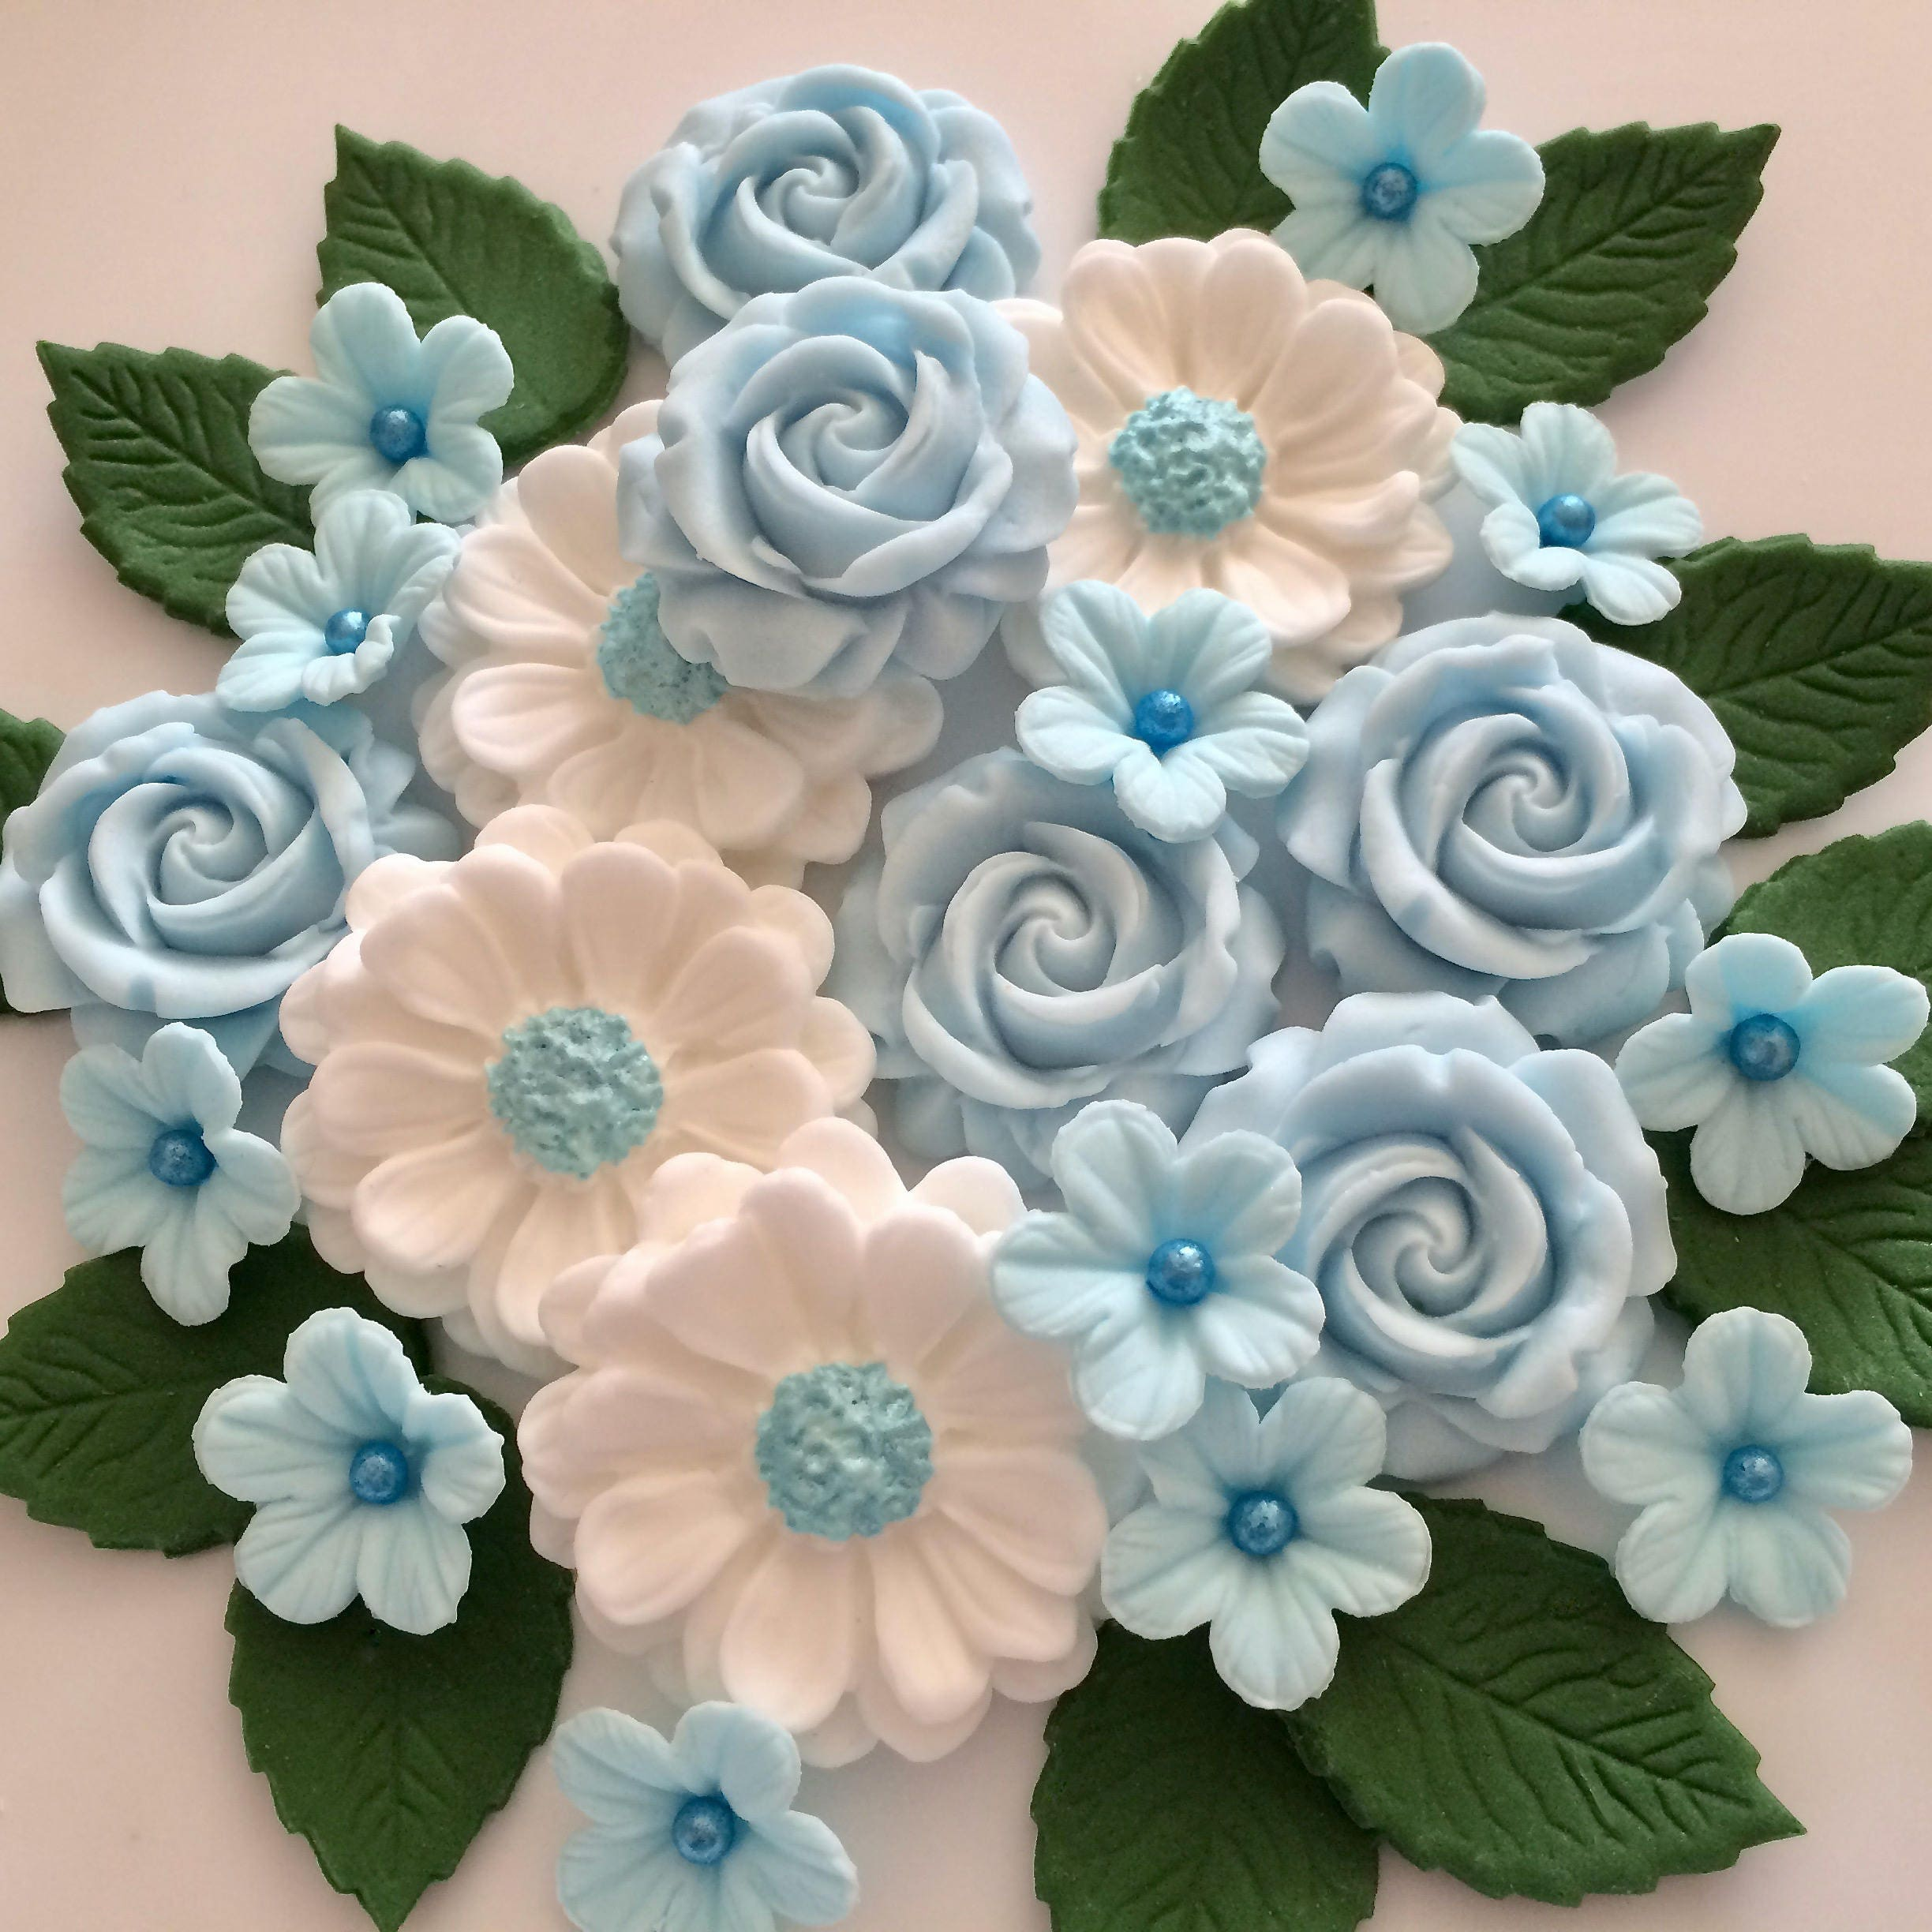 Baby Blue Rose Bouquet Edible Sugar Flowers Cake Decorations Etsy